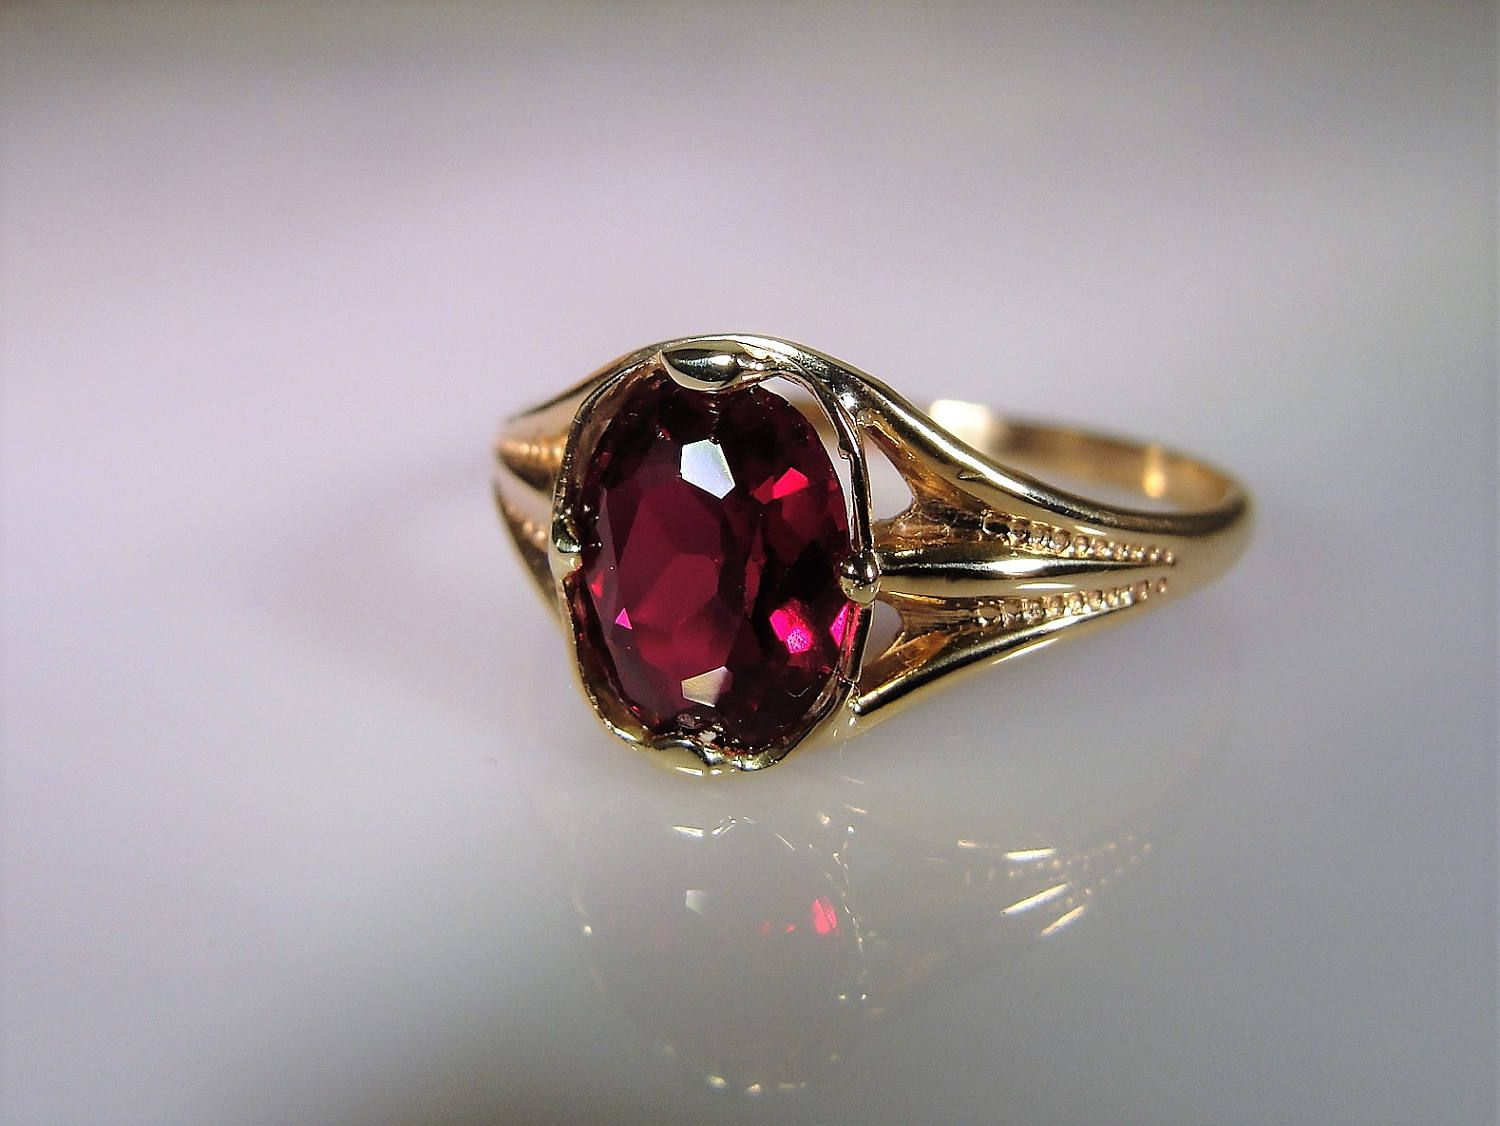 1930s 10k Ruby Ring Ruby Solitaire Ring Art Deco Ring Yellow Gold Ruby Ring Ruby Red Ring Bezel Set Ruby Ruby Solitaire Ring Ruby Ring Gold Art Deco Ring